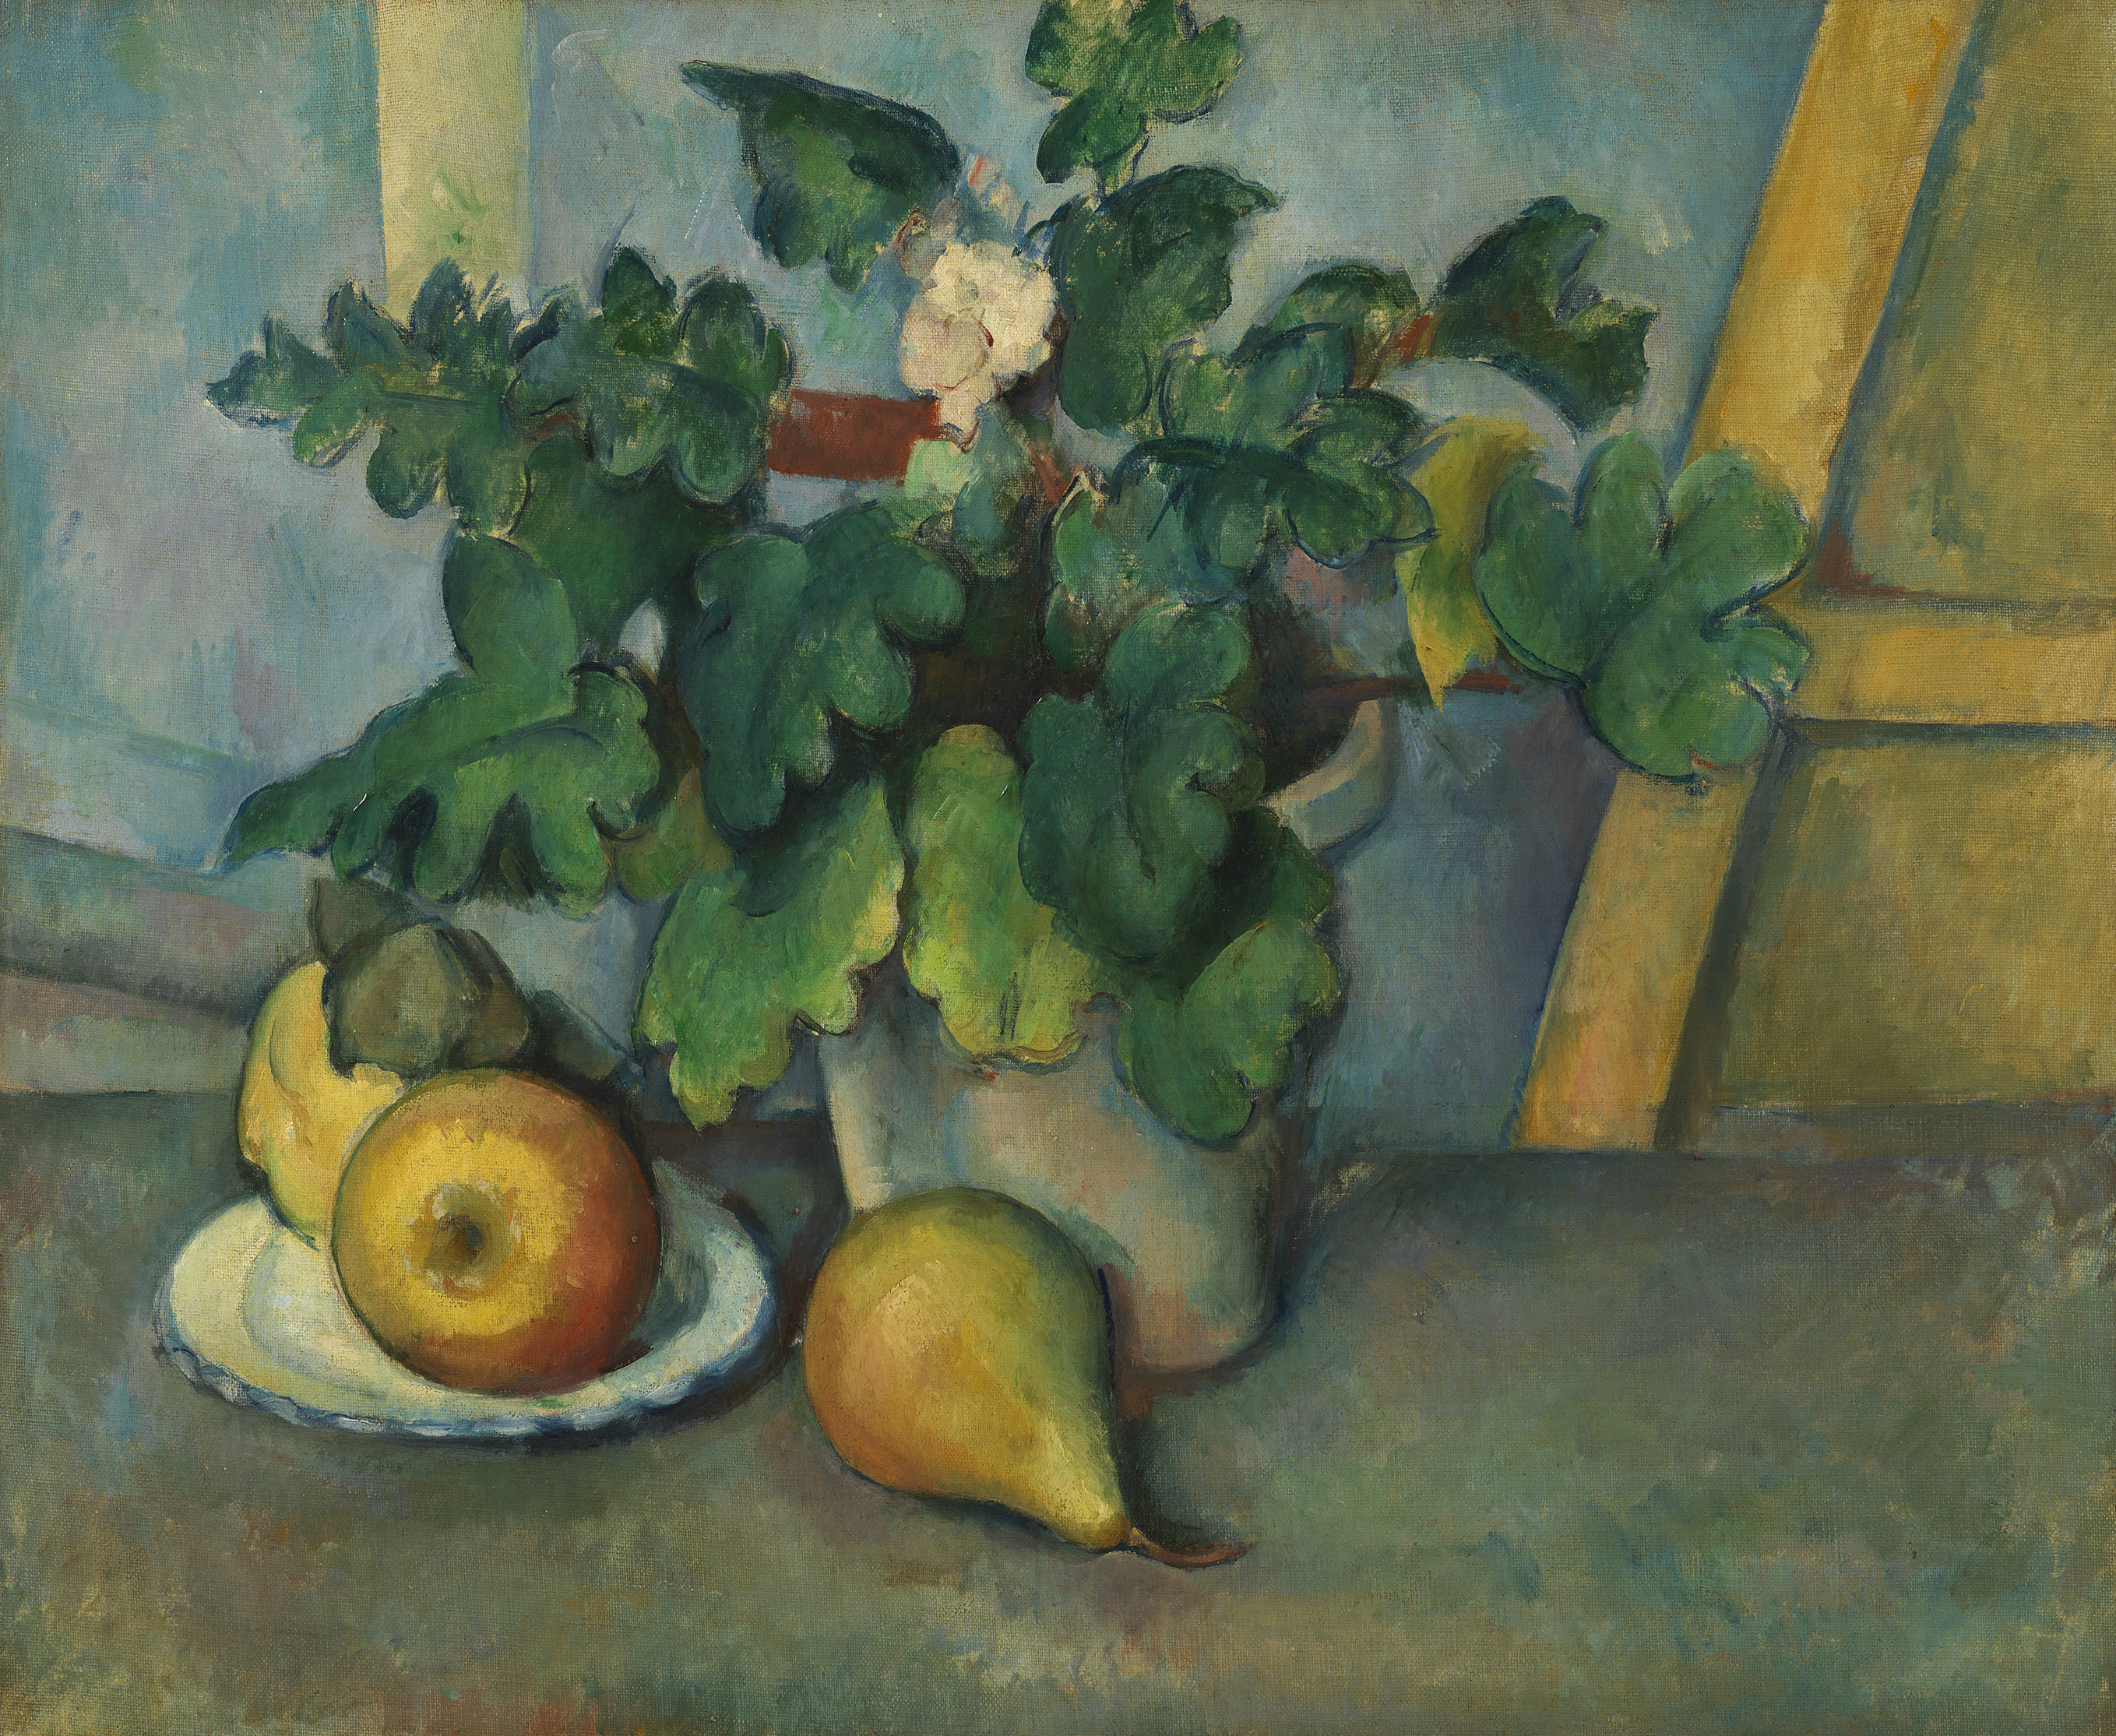 Pot of Primroses and Fruit - Paul Cézanne, c. 1888-90